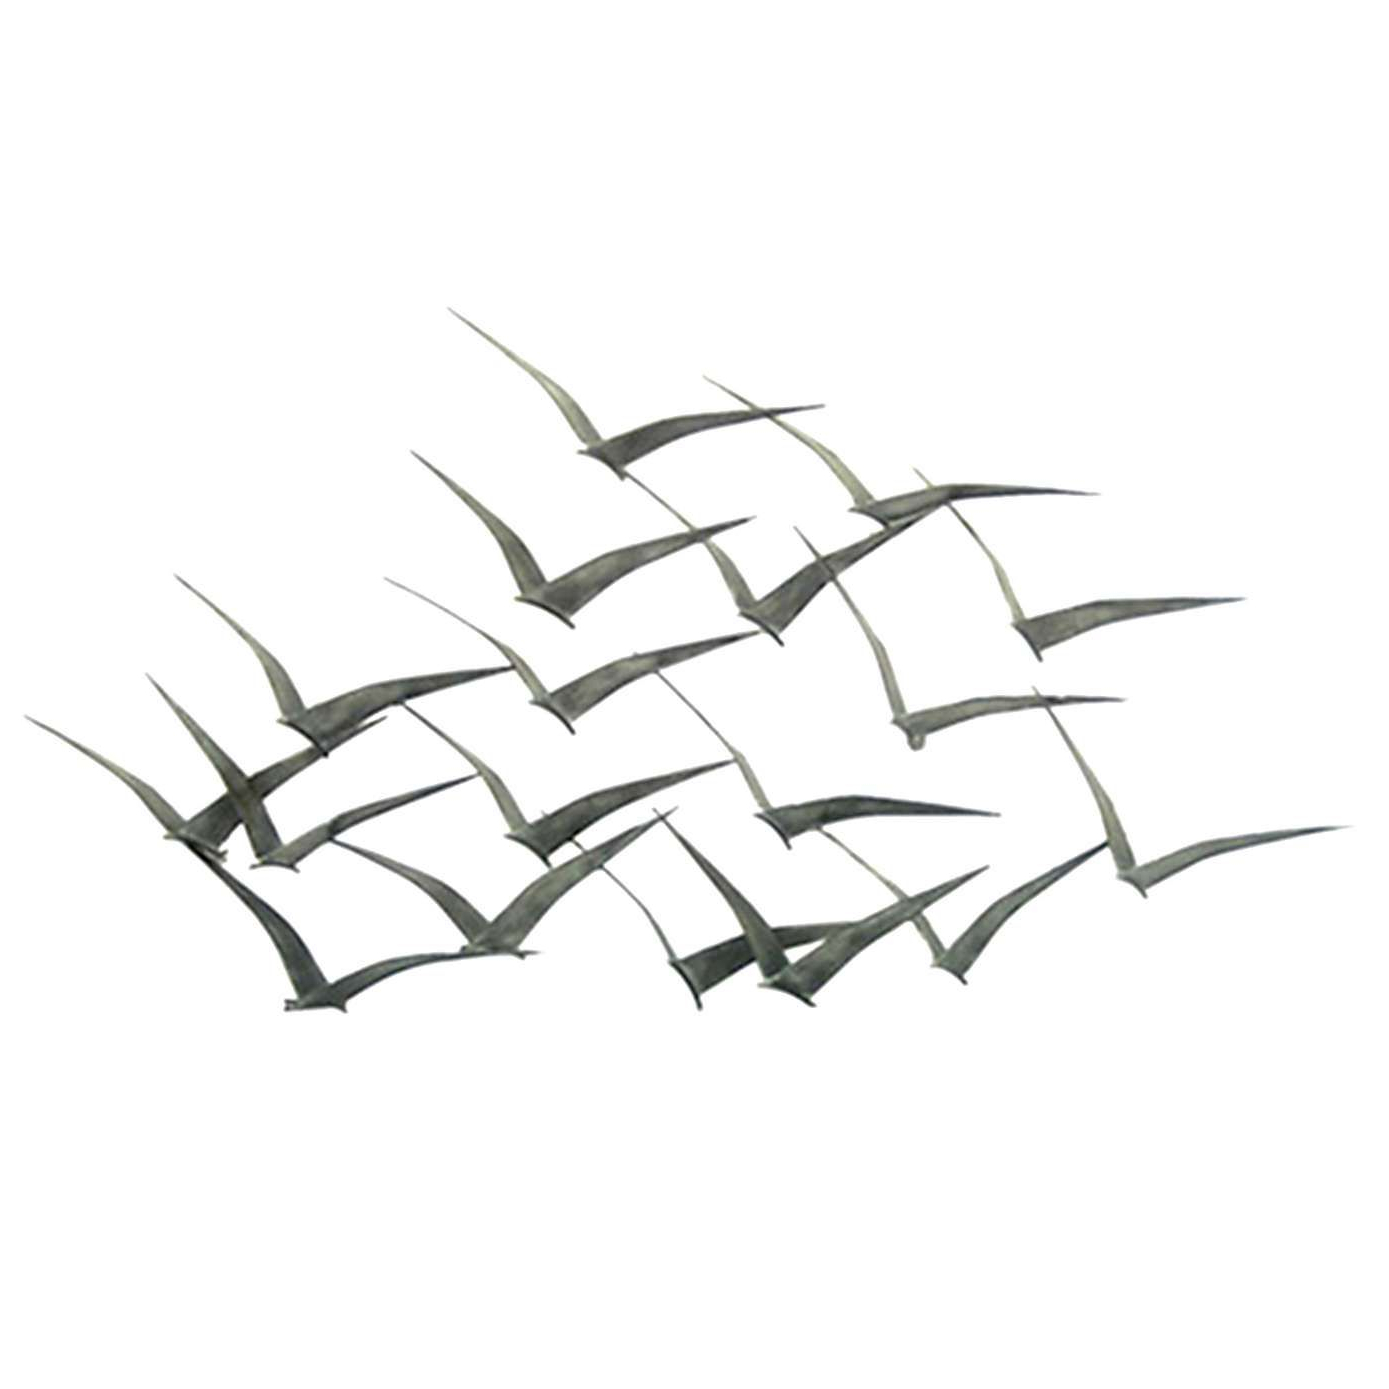 Metal Birds Wall Décor By Beachcrest Home With Regard To Most Recent Flock Of Metal Flying Birds Wall Art (View 19 of 20)